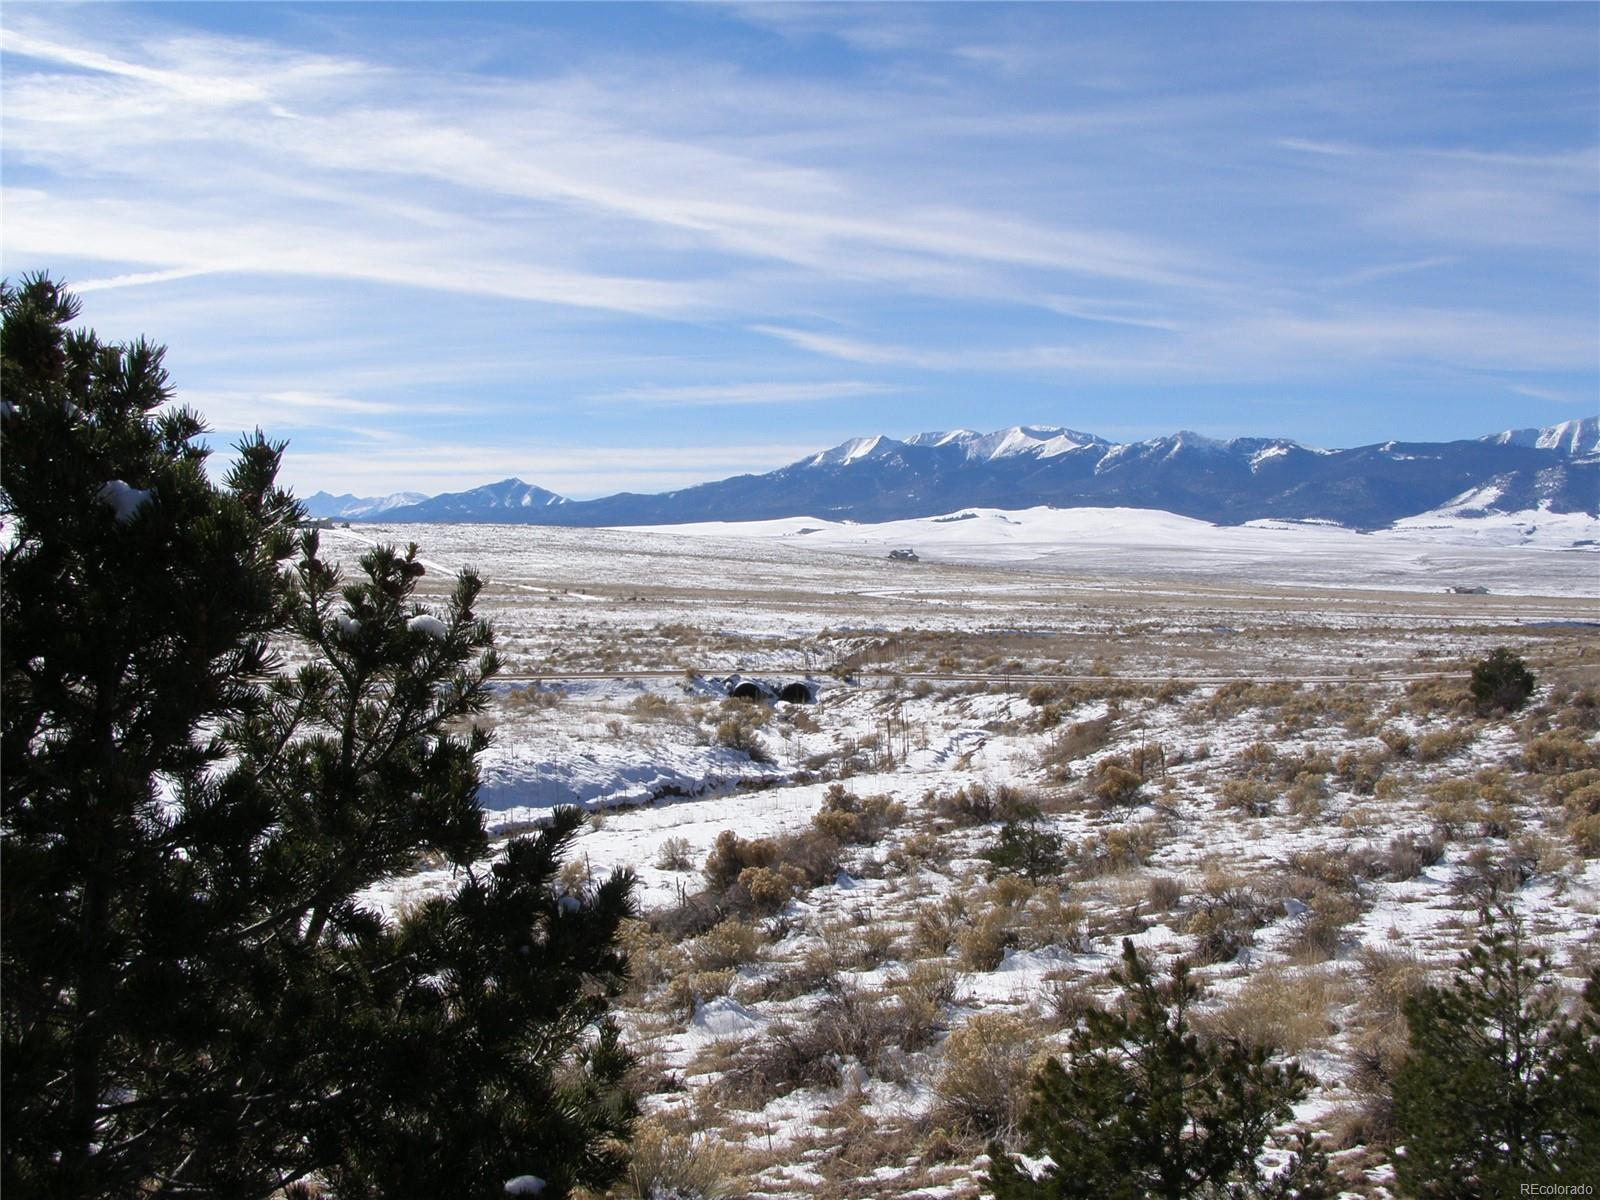 212 Commanche Road, Westcliffe, CO 81252 - Westcliffe, CO real estate listing